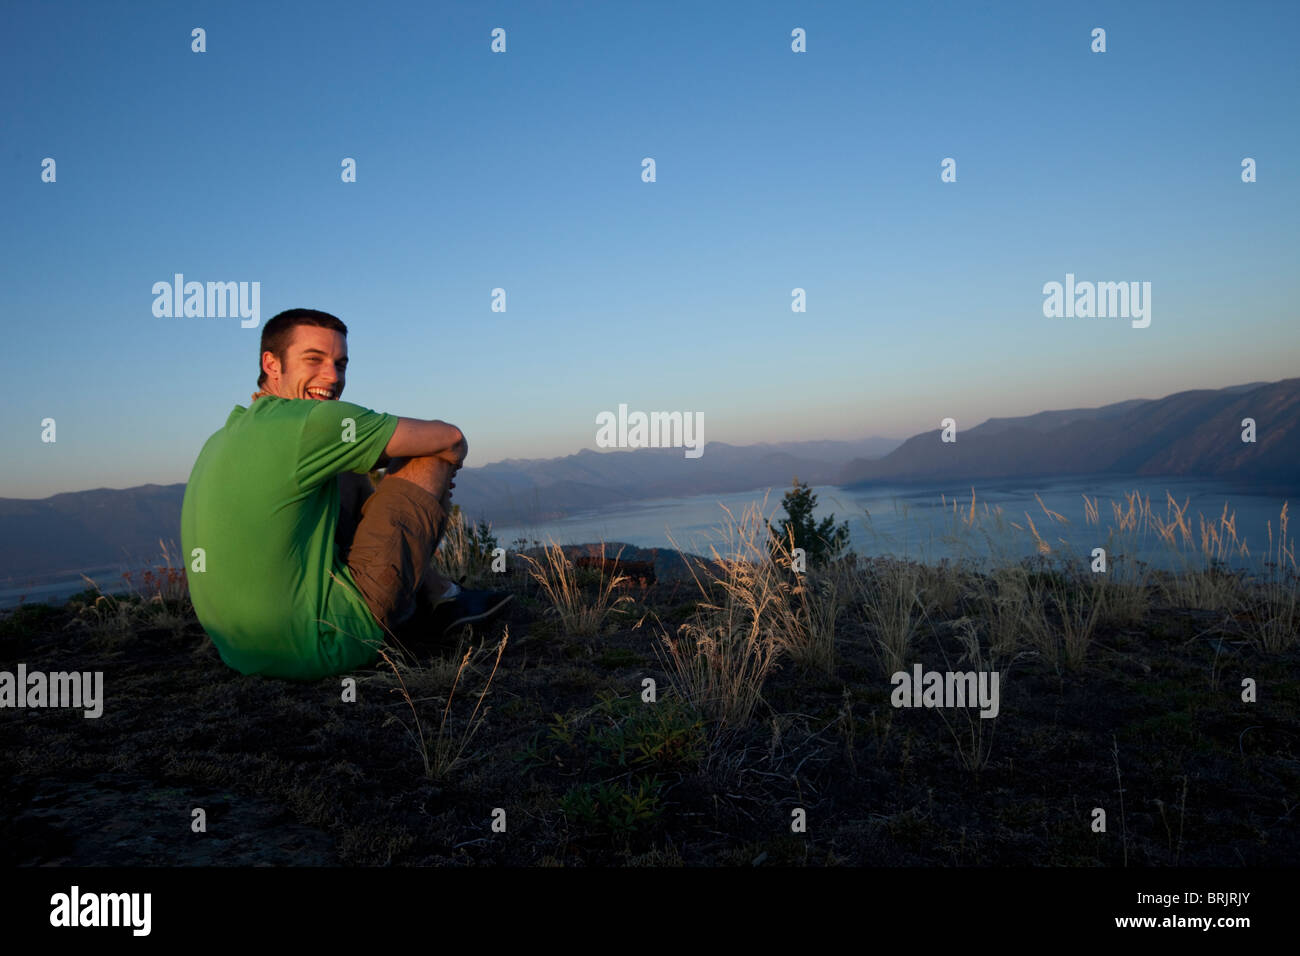 Young man hiking at sunset in Idaho. - Stock Image